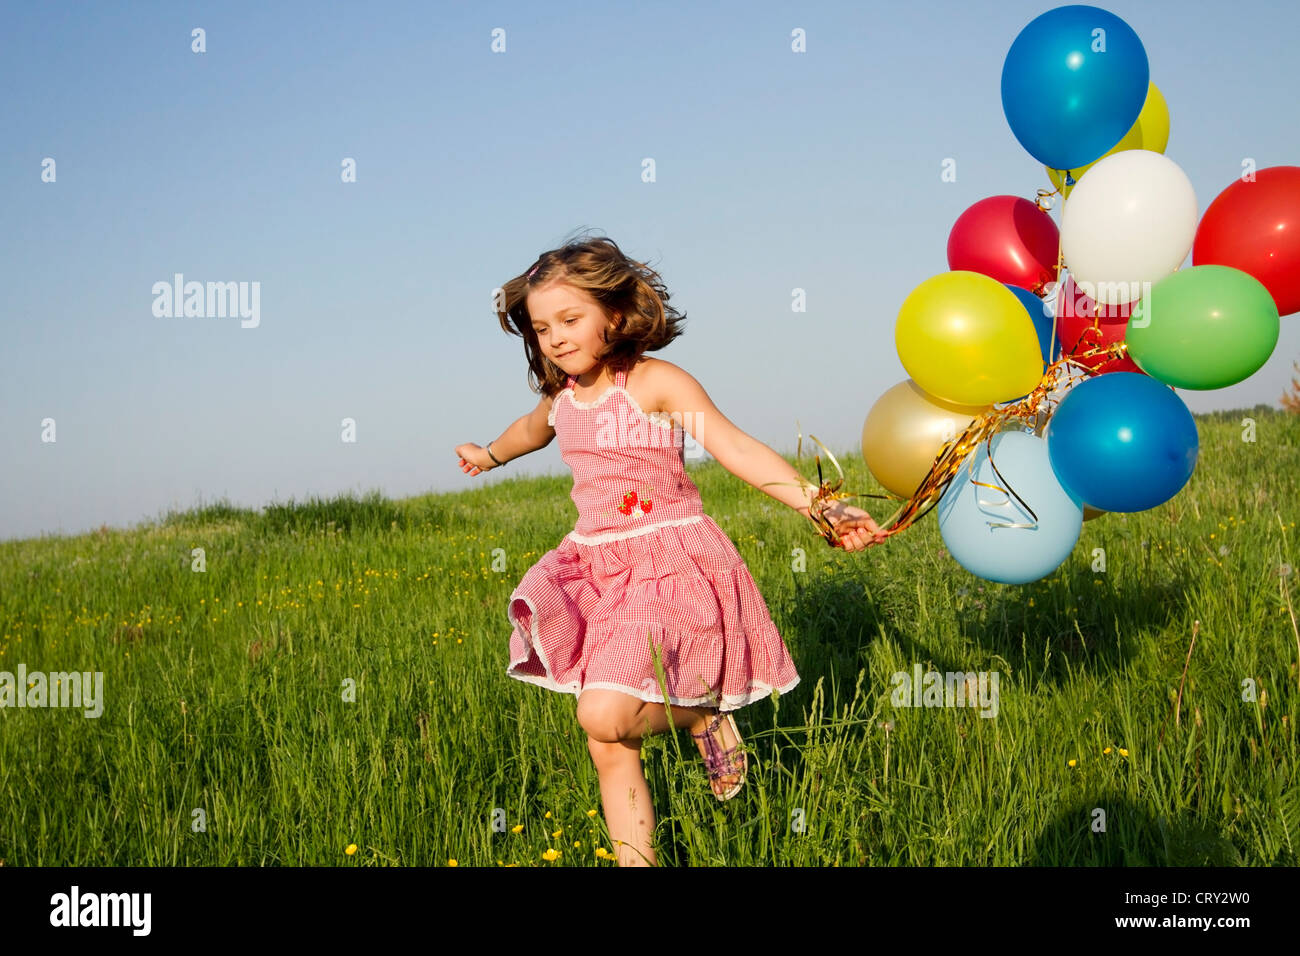 little girl runs with multicolored balloons - Stock Image